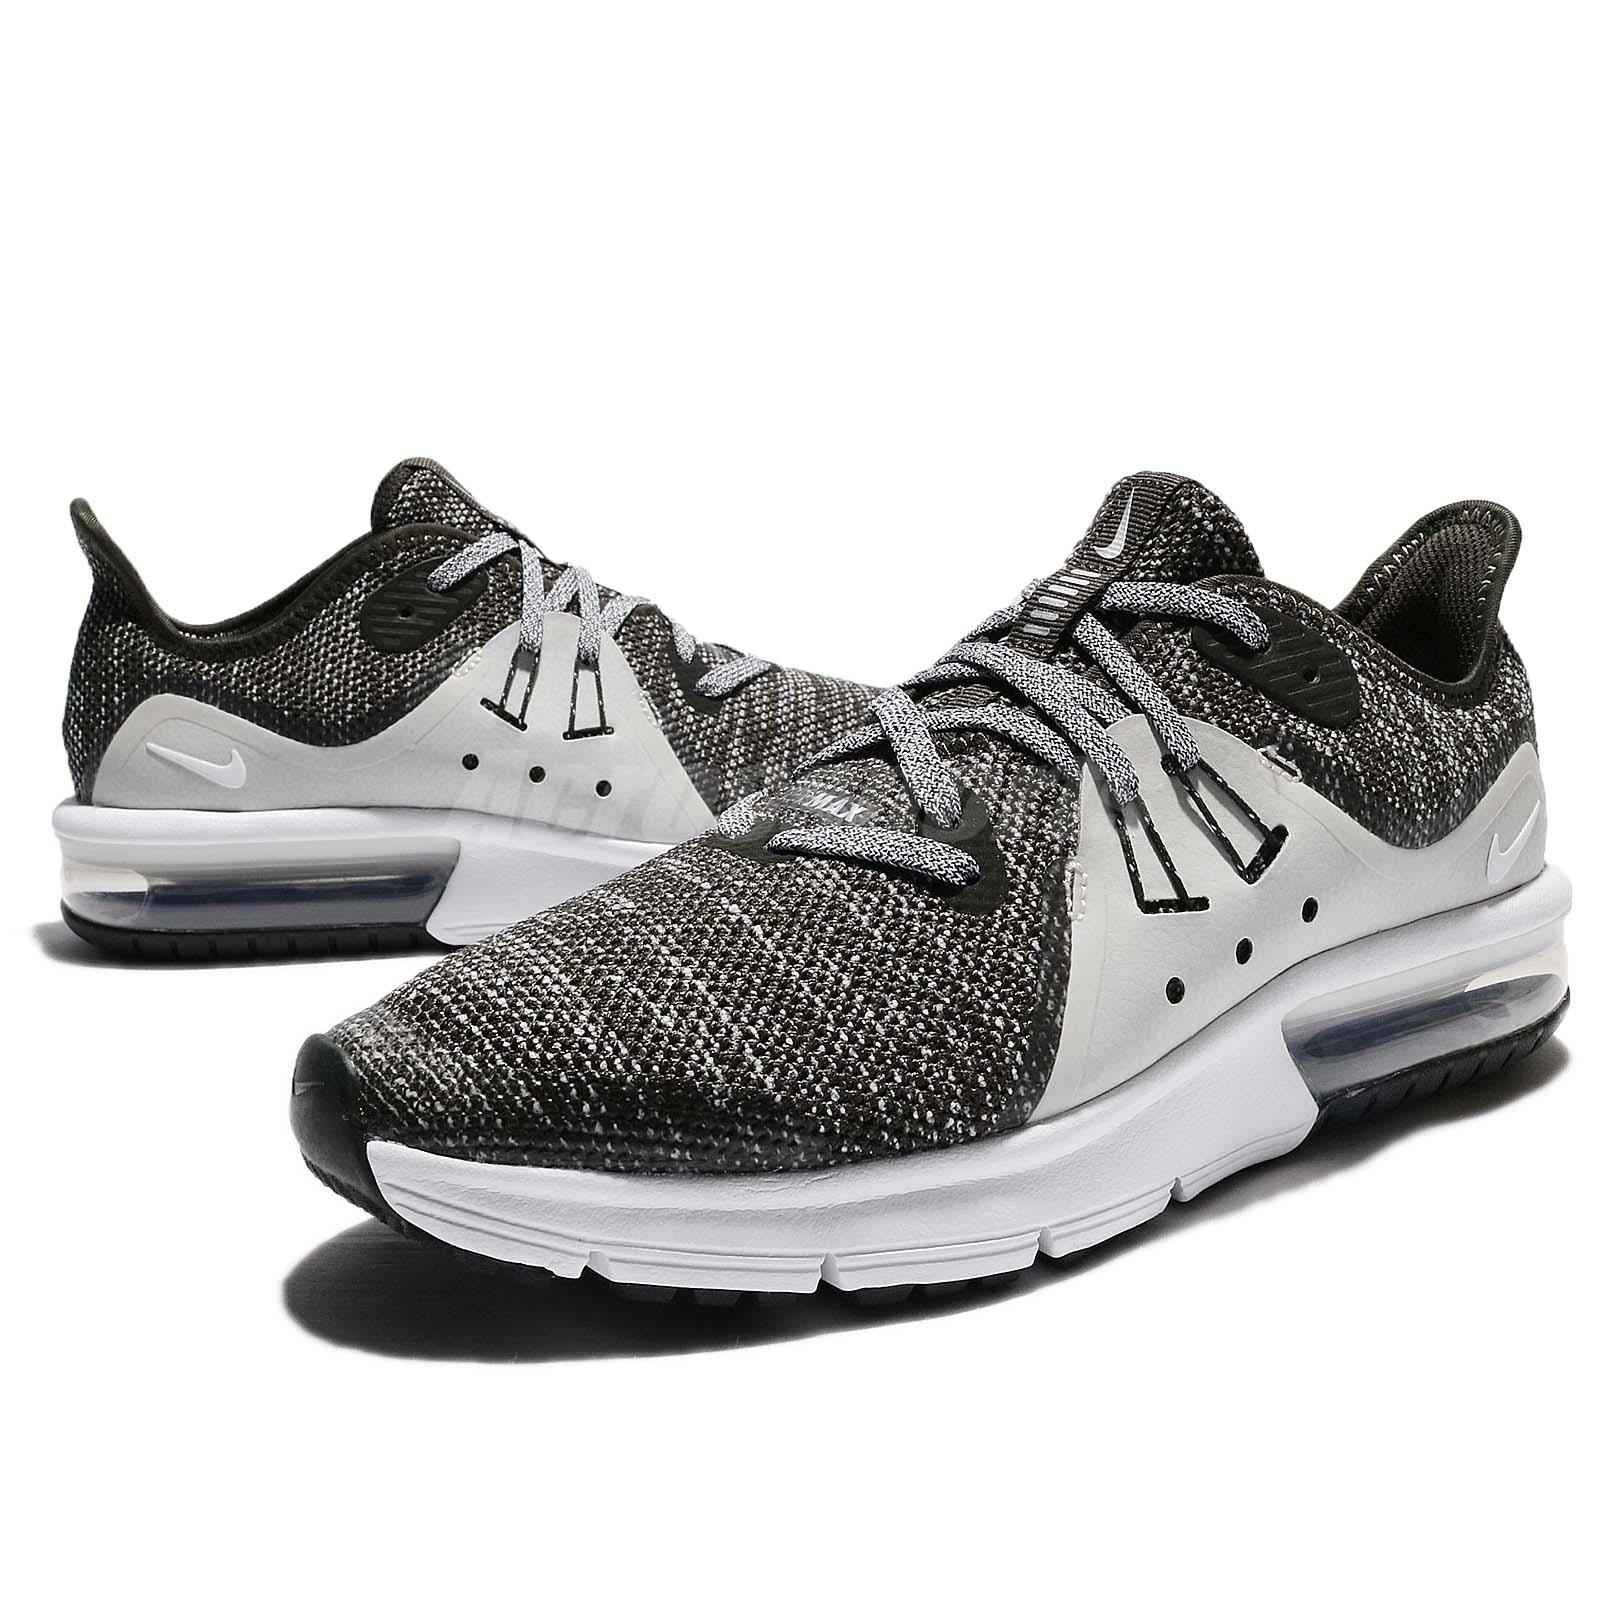 finest selection 86442 2318c Nike Air Max Sequent 3 III GS Sequoia White Bone Kids Women Running ...